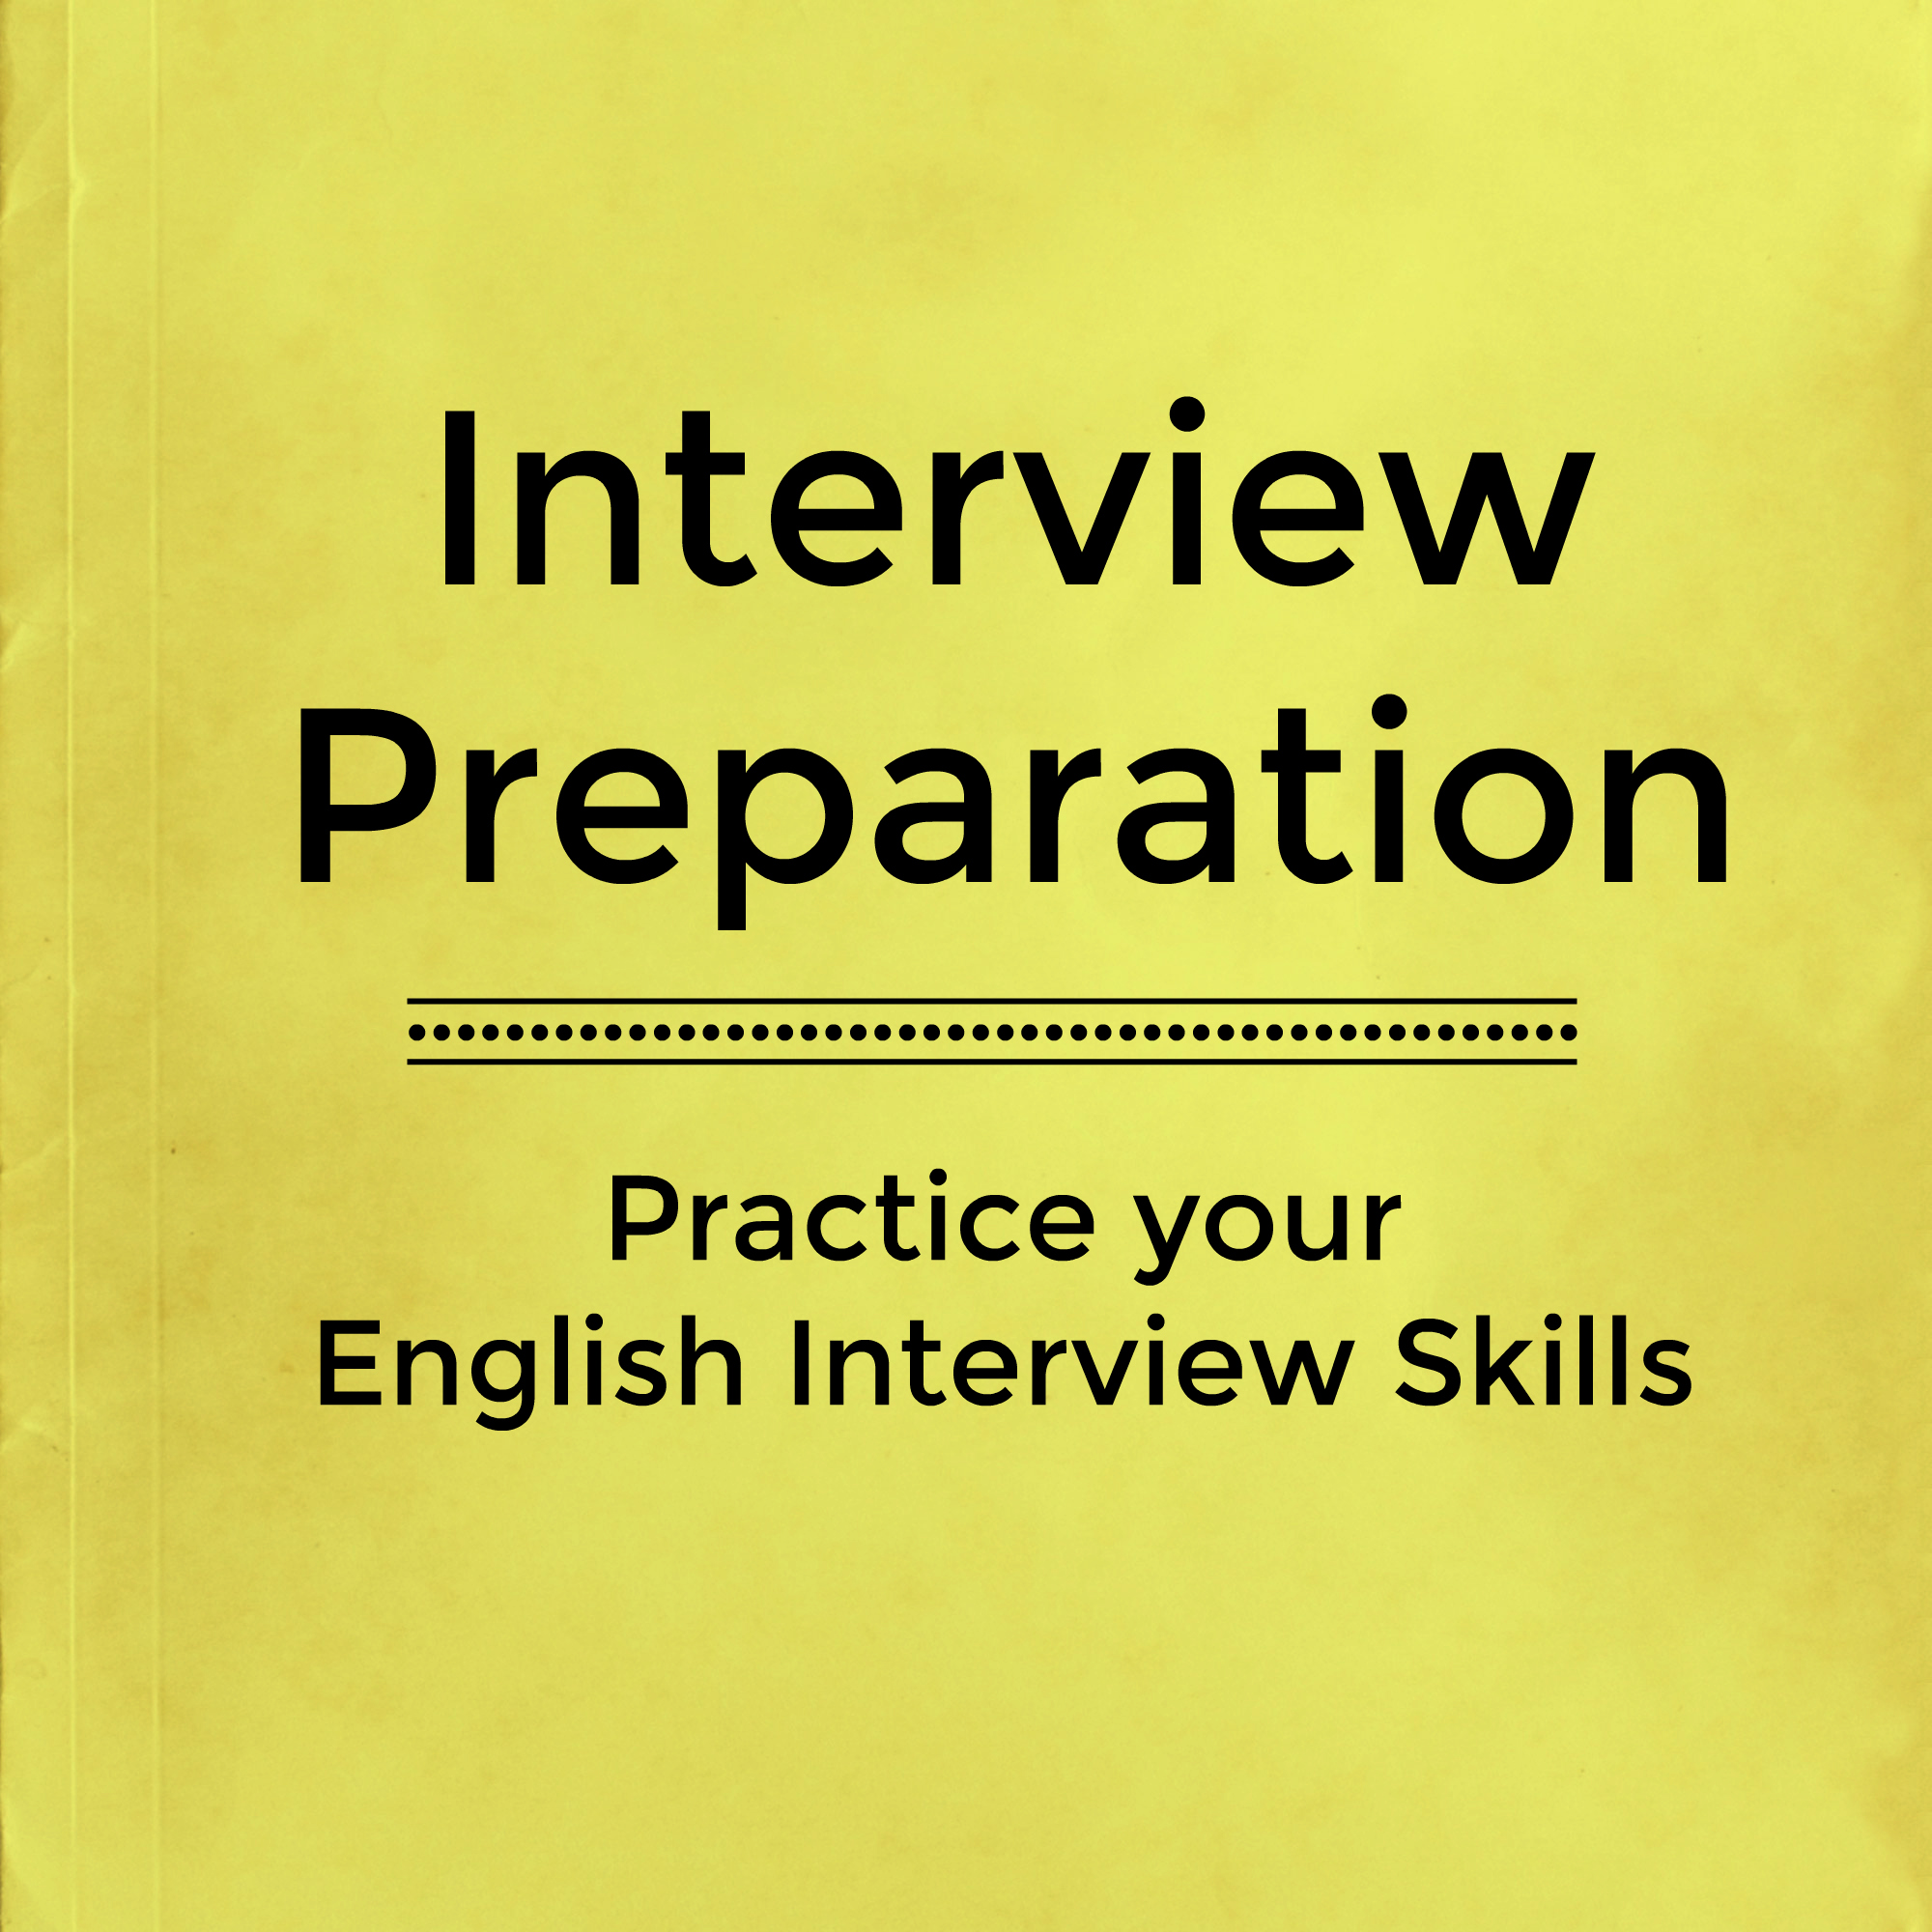 improve your english skills and land a new career skypenglish4u